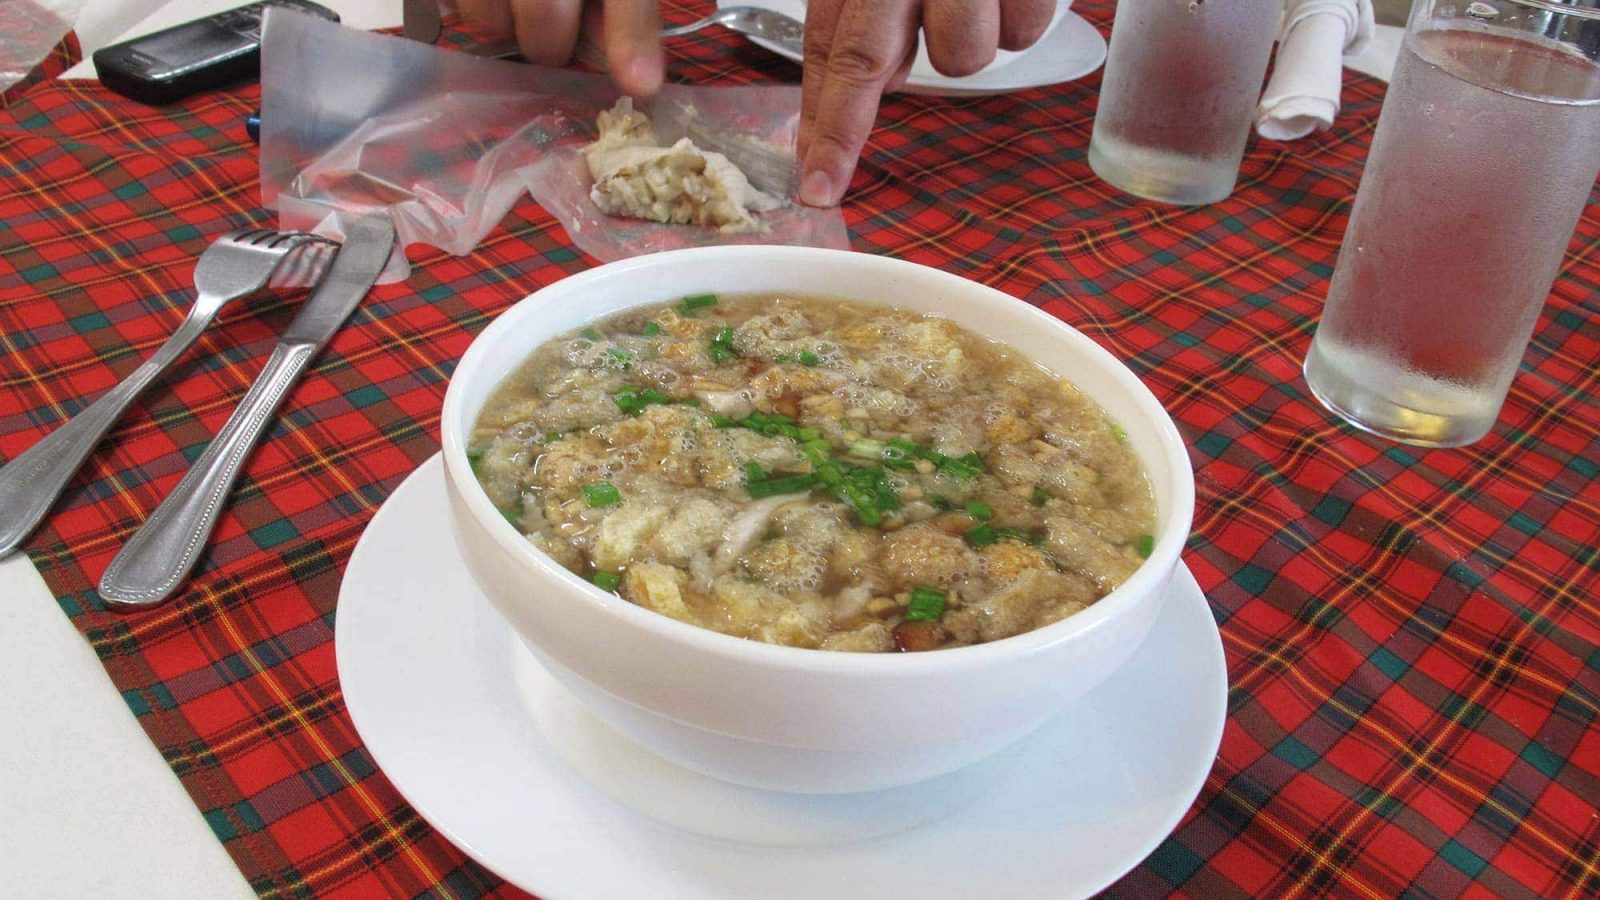 Batchon (batchoy with lechon), Pendy's, Bacolod City